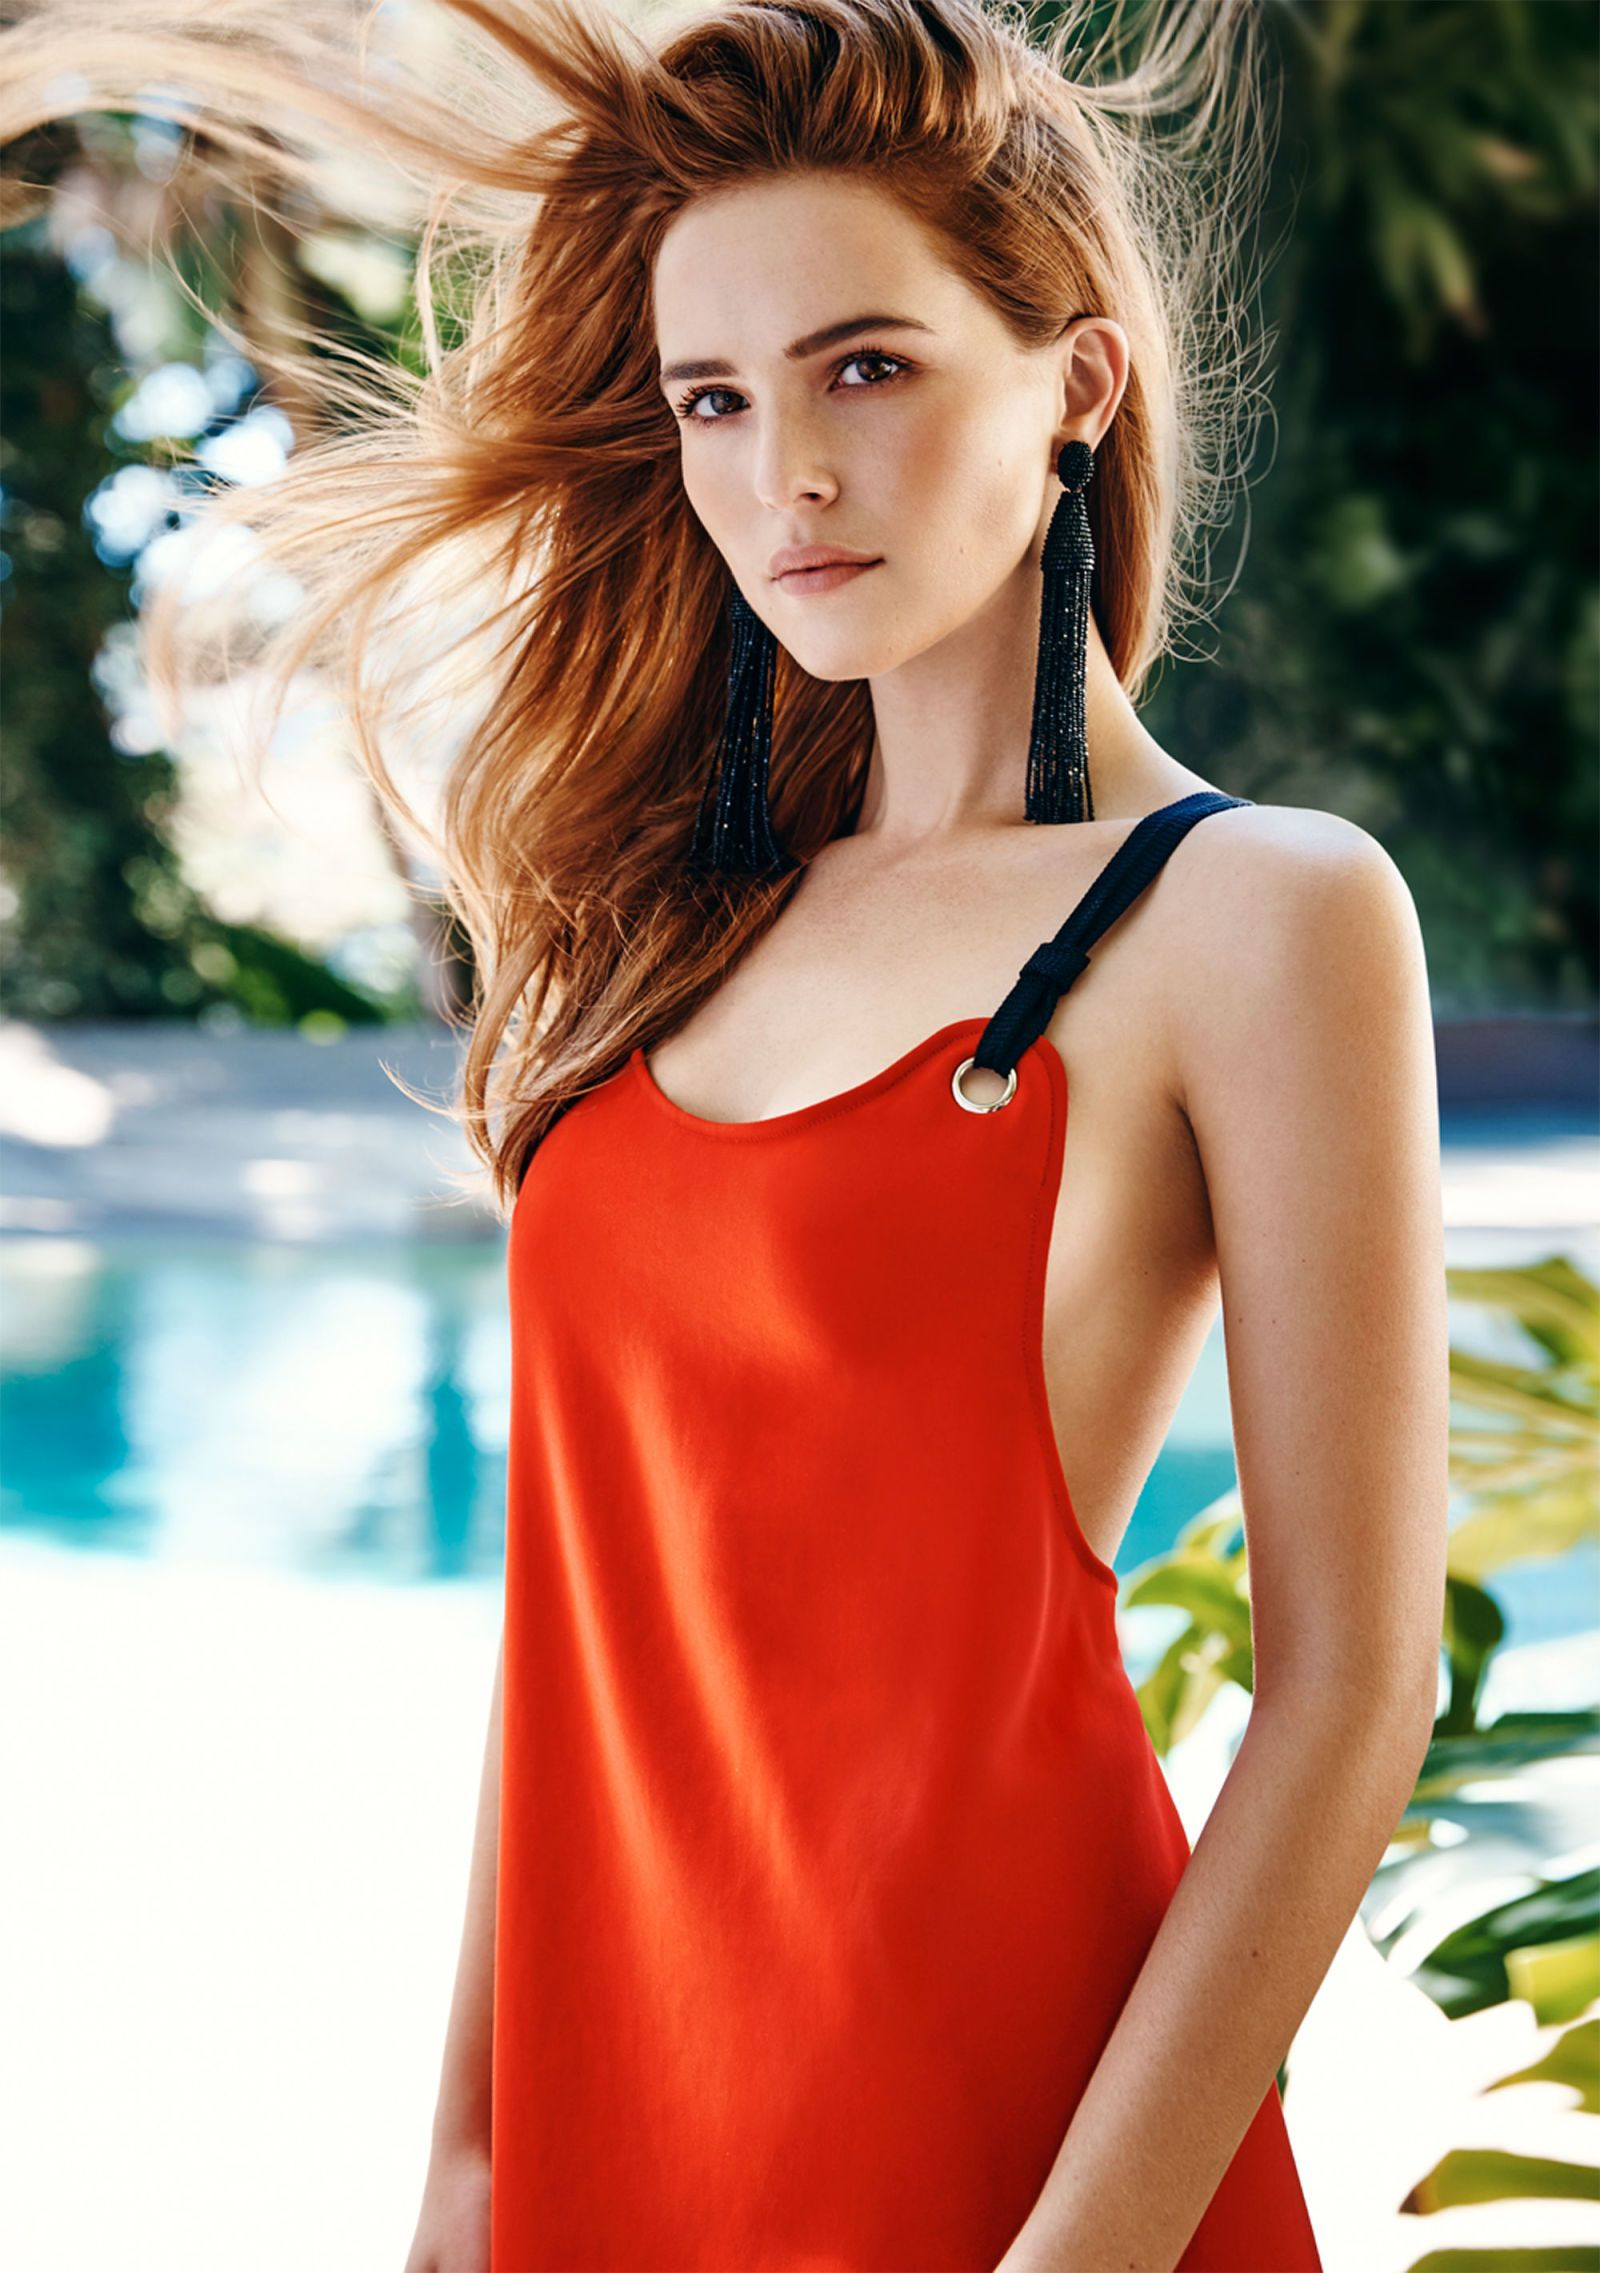 How Zoey Deutch Deals With Social Media, Fame, and Kissing Zac Efron